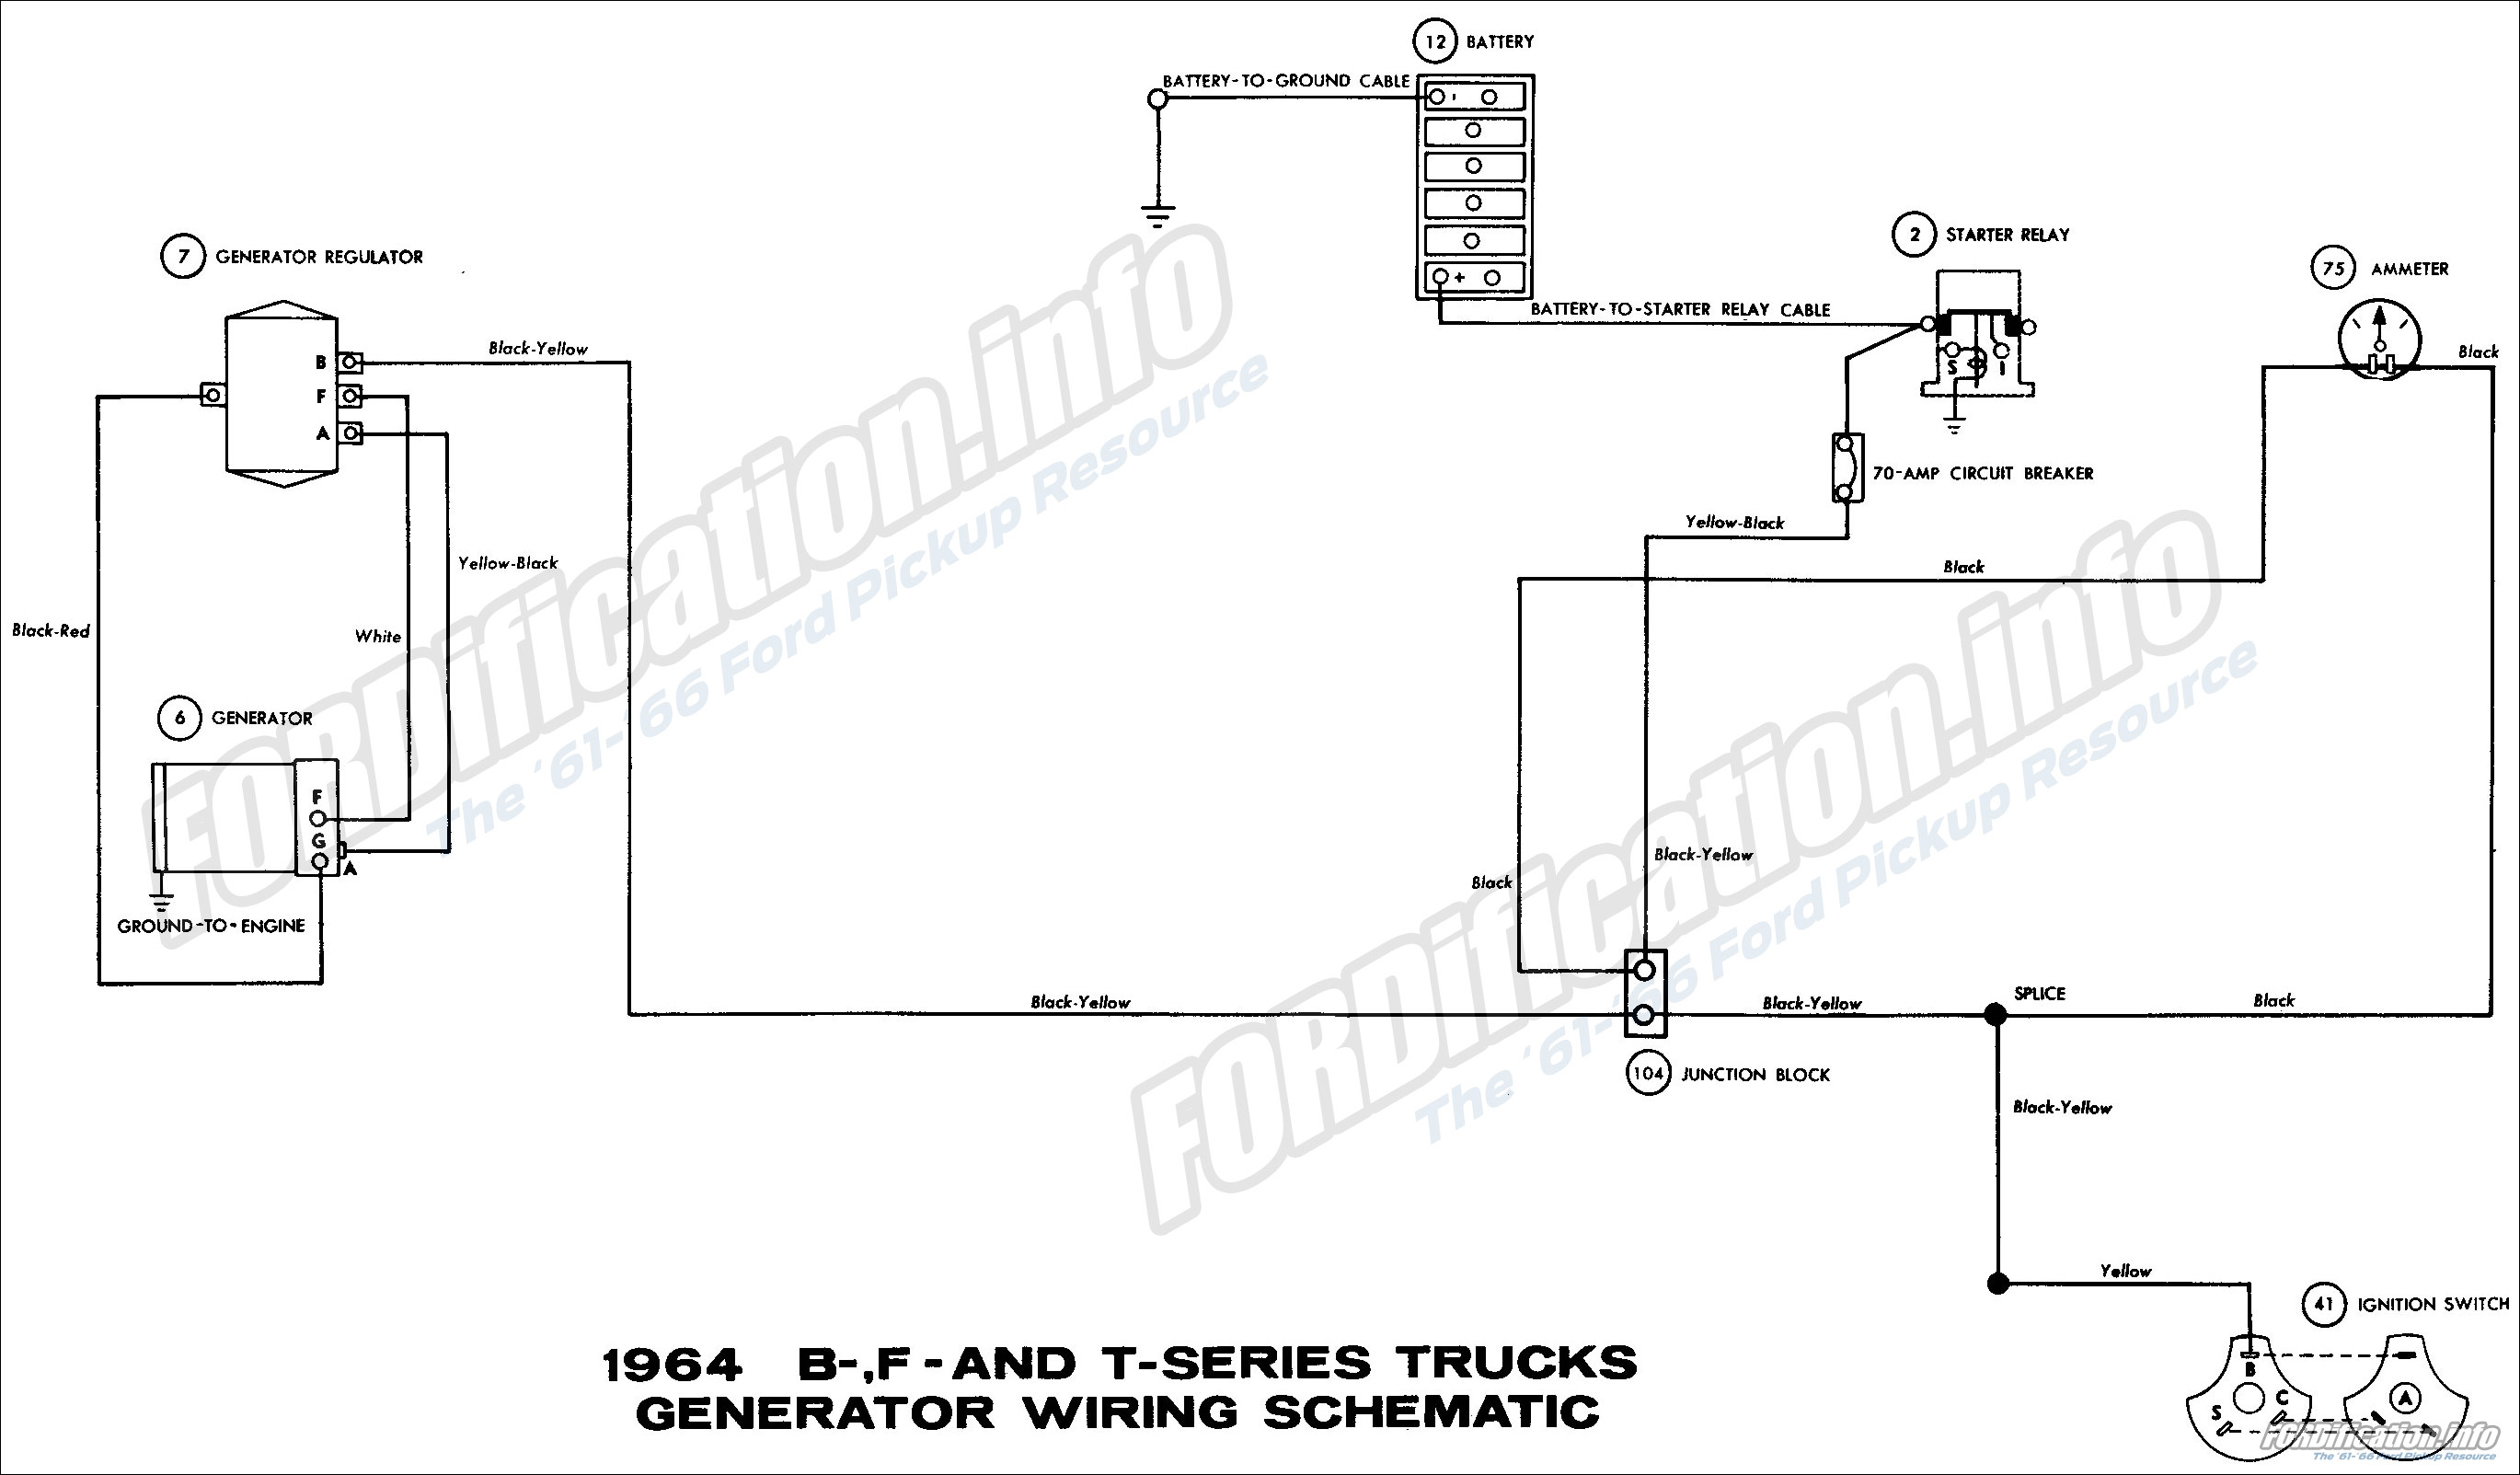 1964 Ford Truck Wiring Diagram 1978 chevy truck wiring ... Ignition Switch Wiring Diagram C on